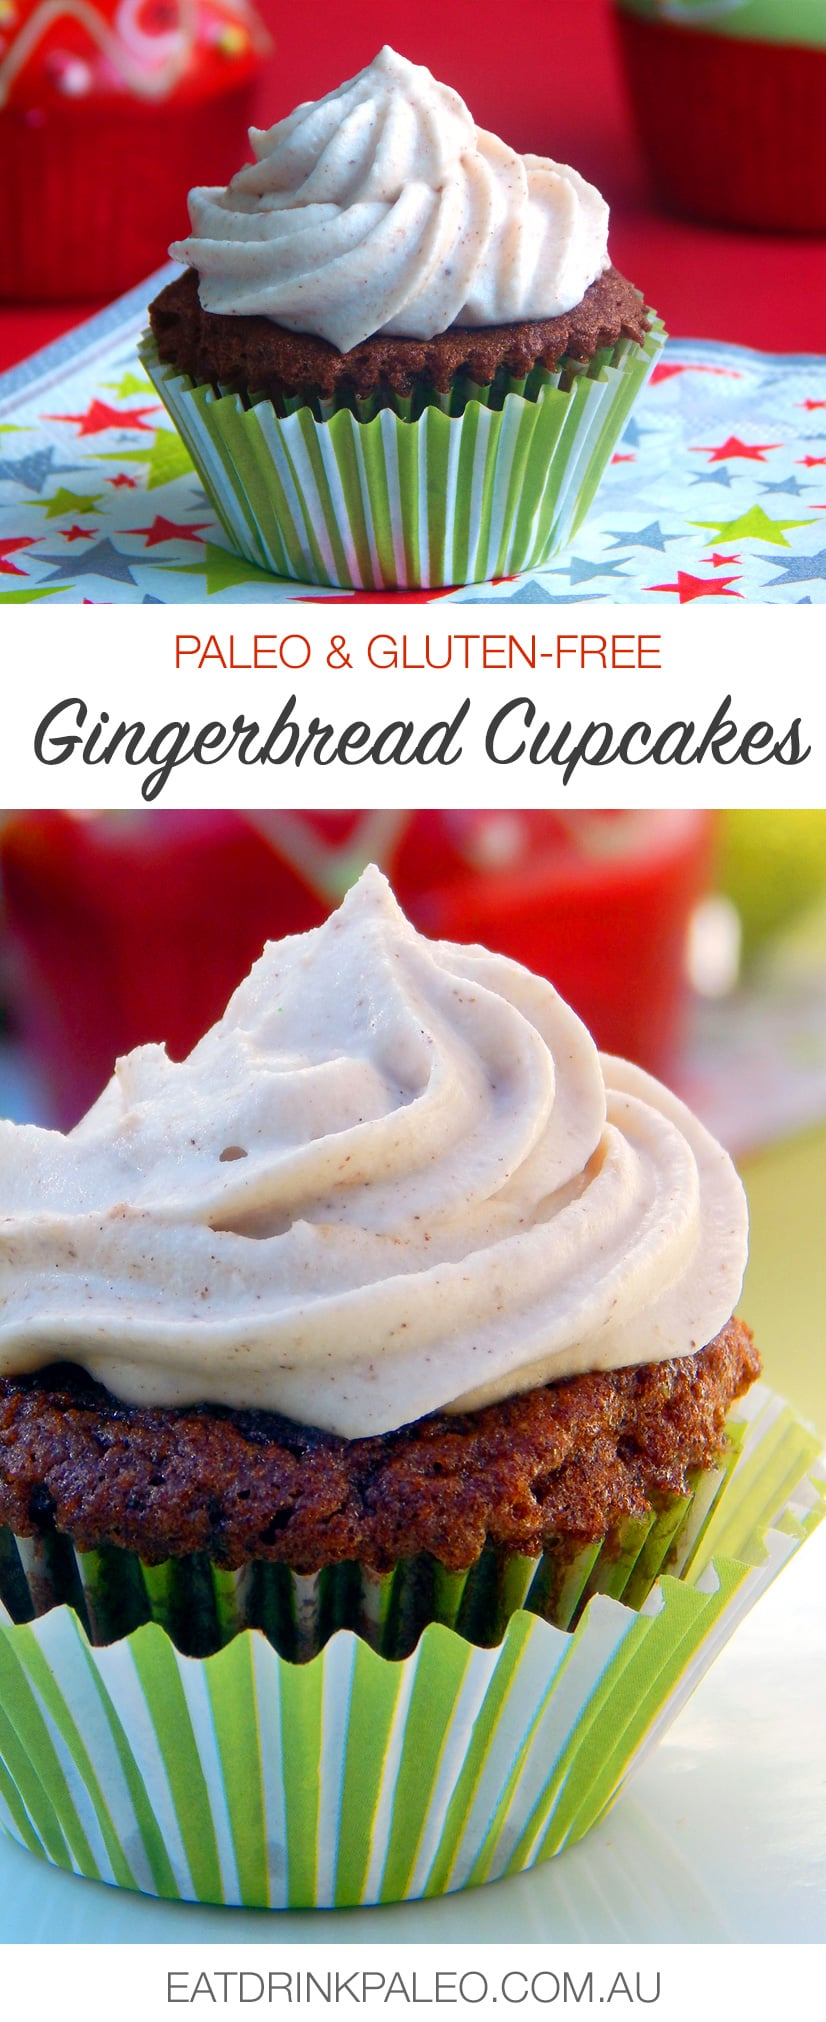 Paleo Gingerbread Cupcakes (Nut-free, gluten-free recipe)